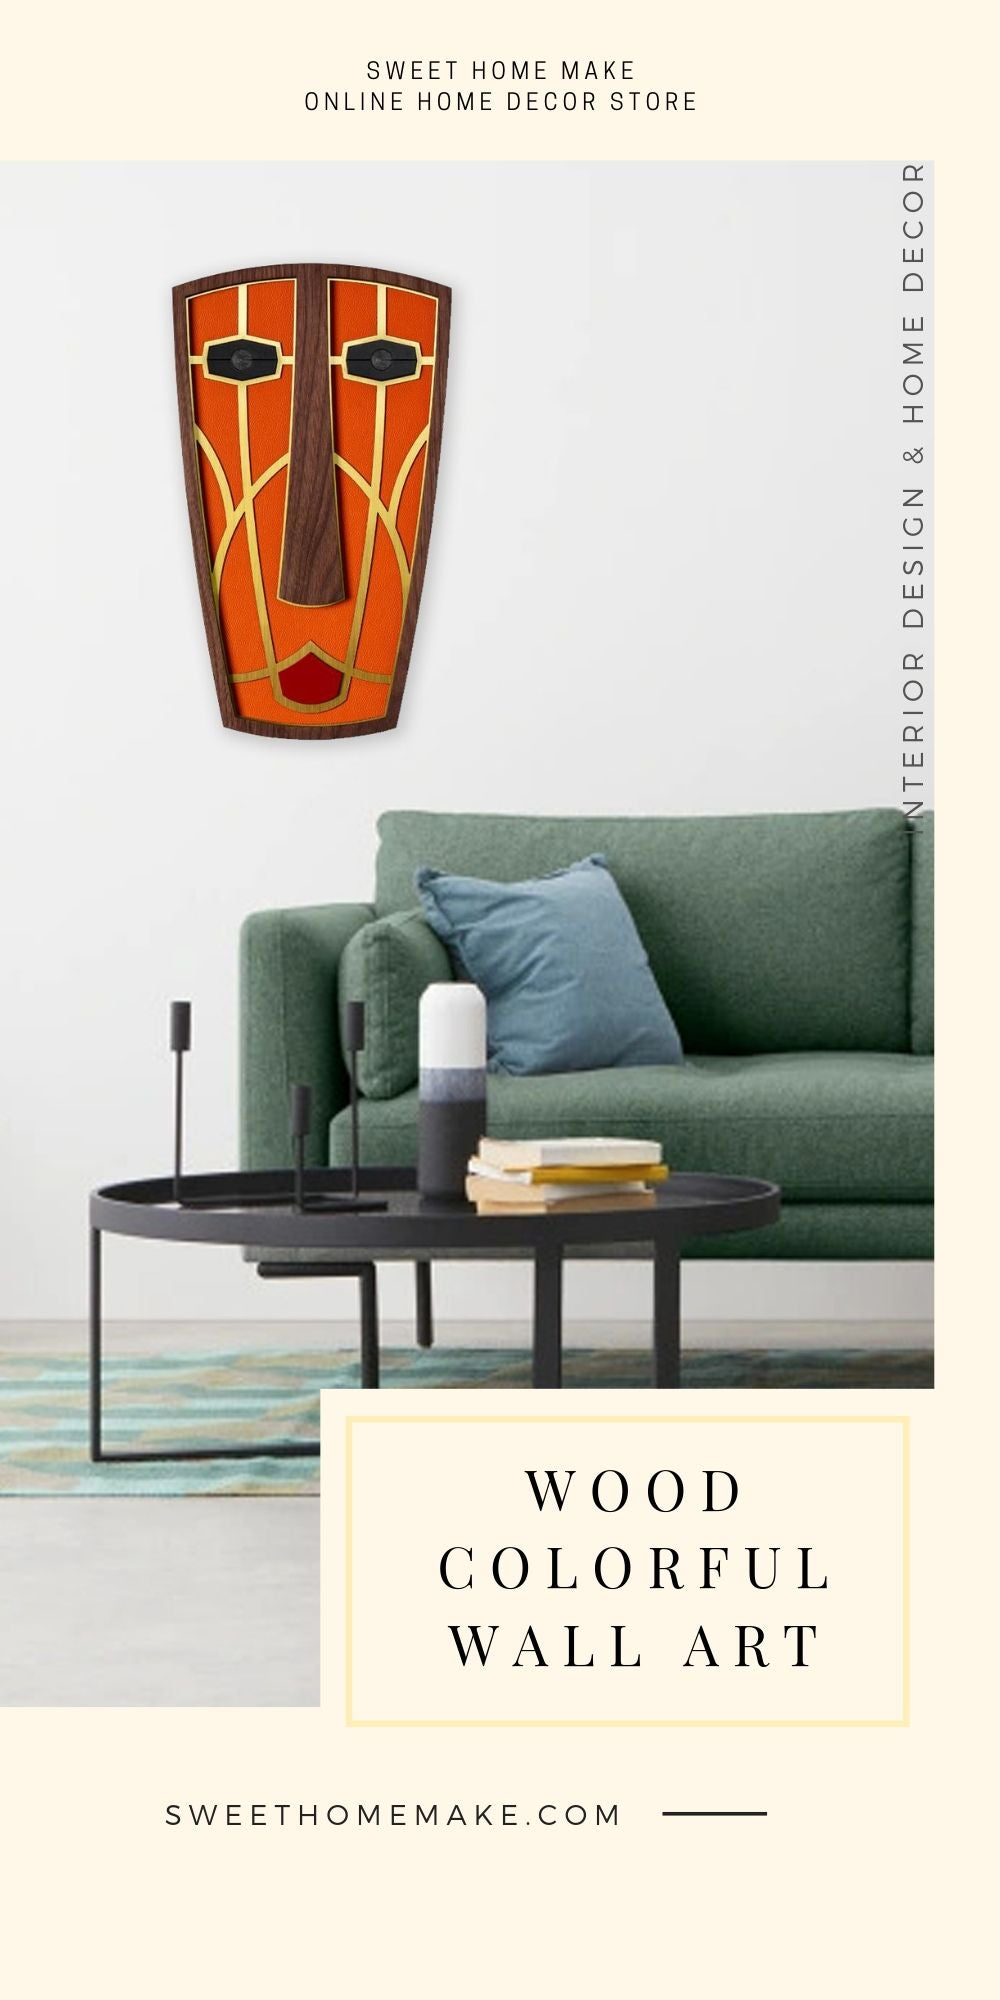 African Wall Mask with Modern Wall Art